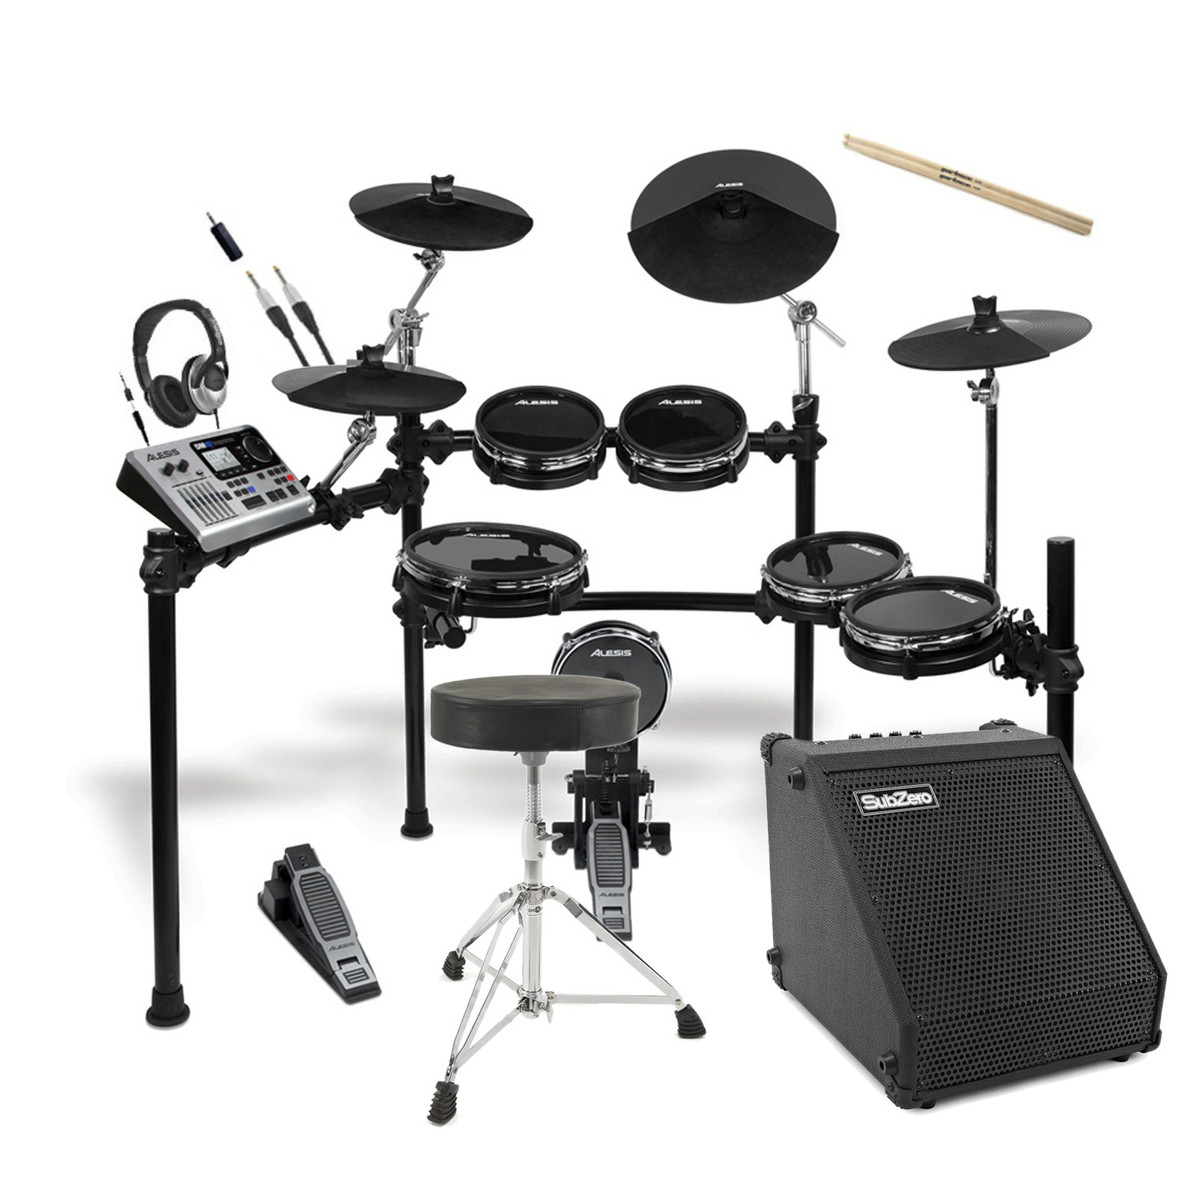 alesis dm10 x studio kit mesh digital drum kit bundle at. Black Bedroom Furniture Sets. Home Design Ideas